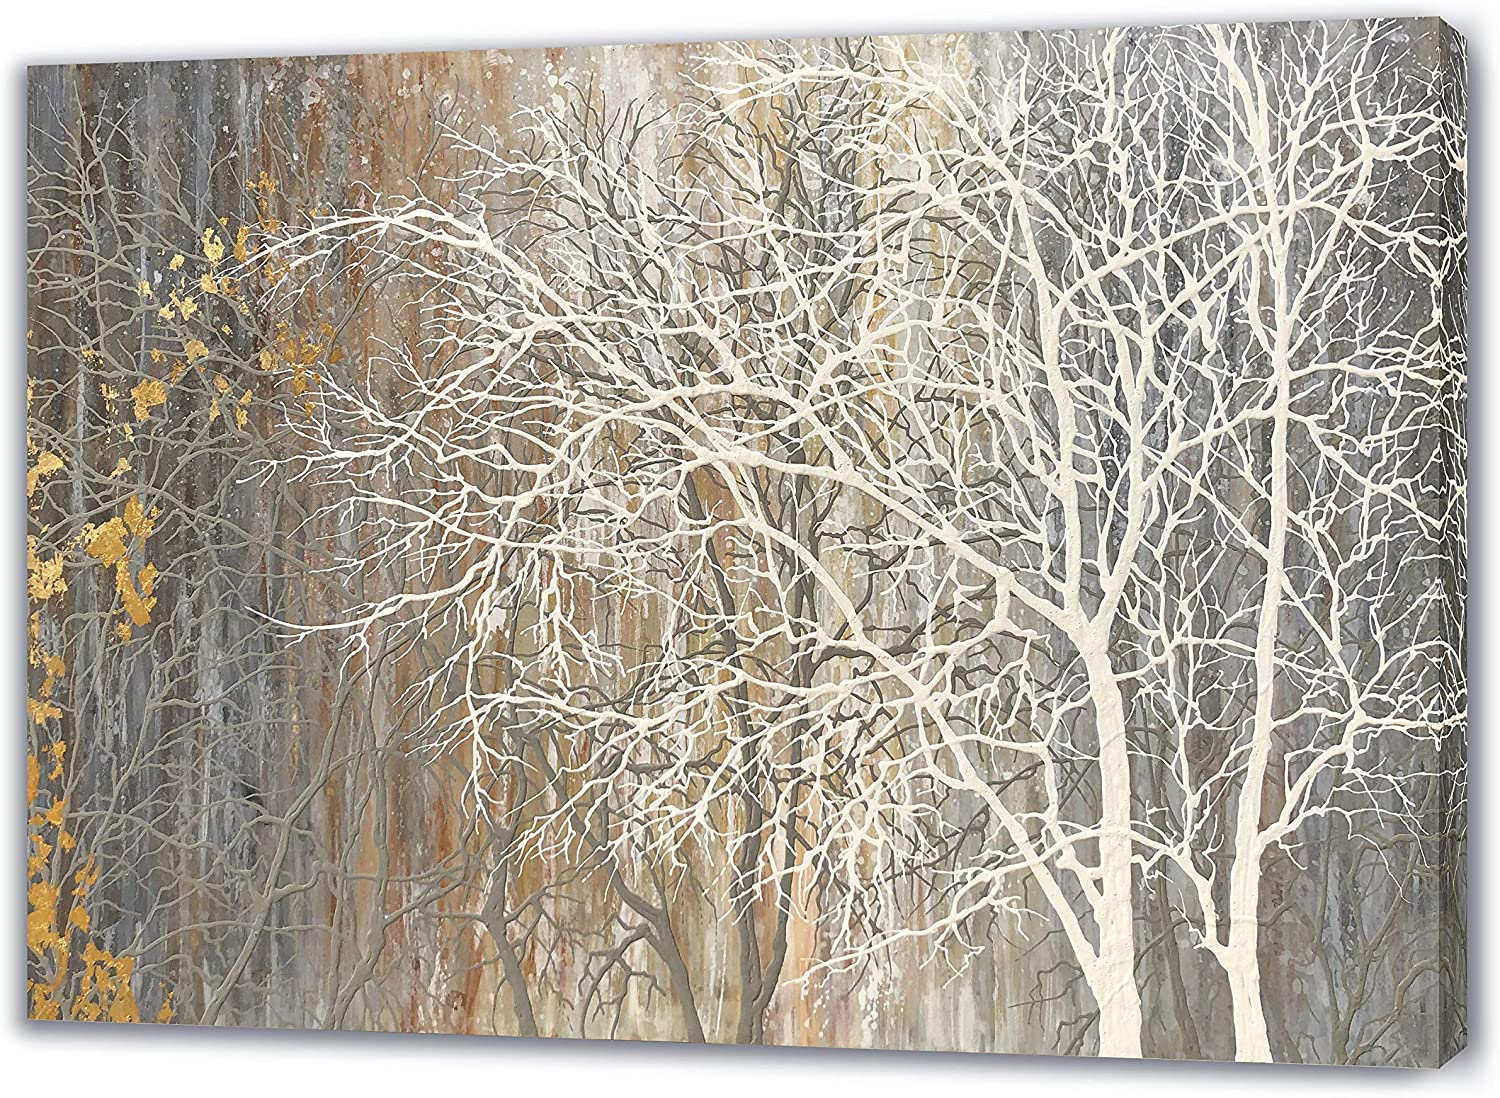 Yihui Arts White Birch Trees Painting 3D Canvas Art On Canvas Abstract Artwork Art Wood Inside Framed Hanging Wall Decoration Abstract Painting One Panel for Home Modern Decor